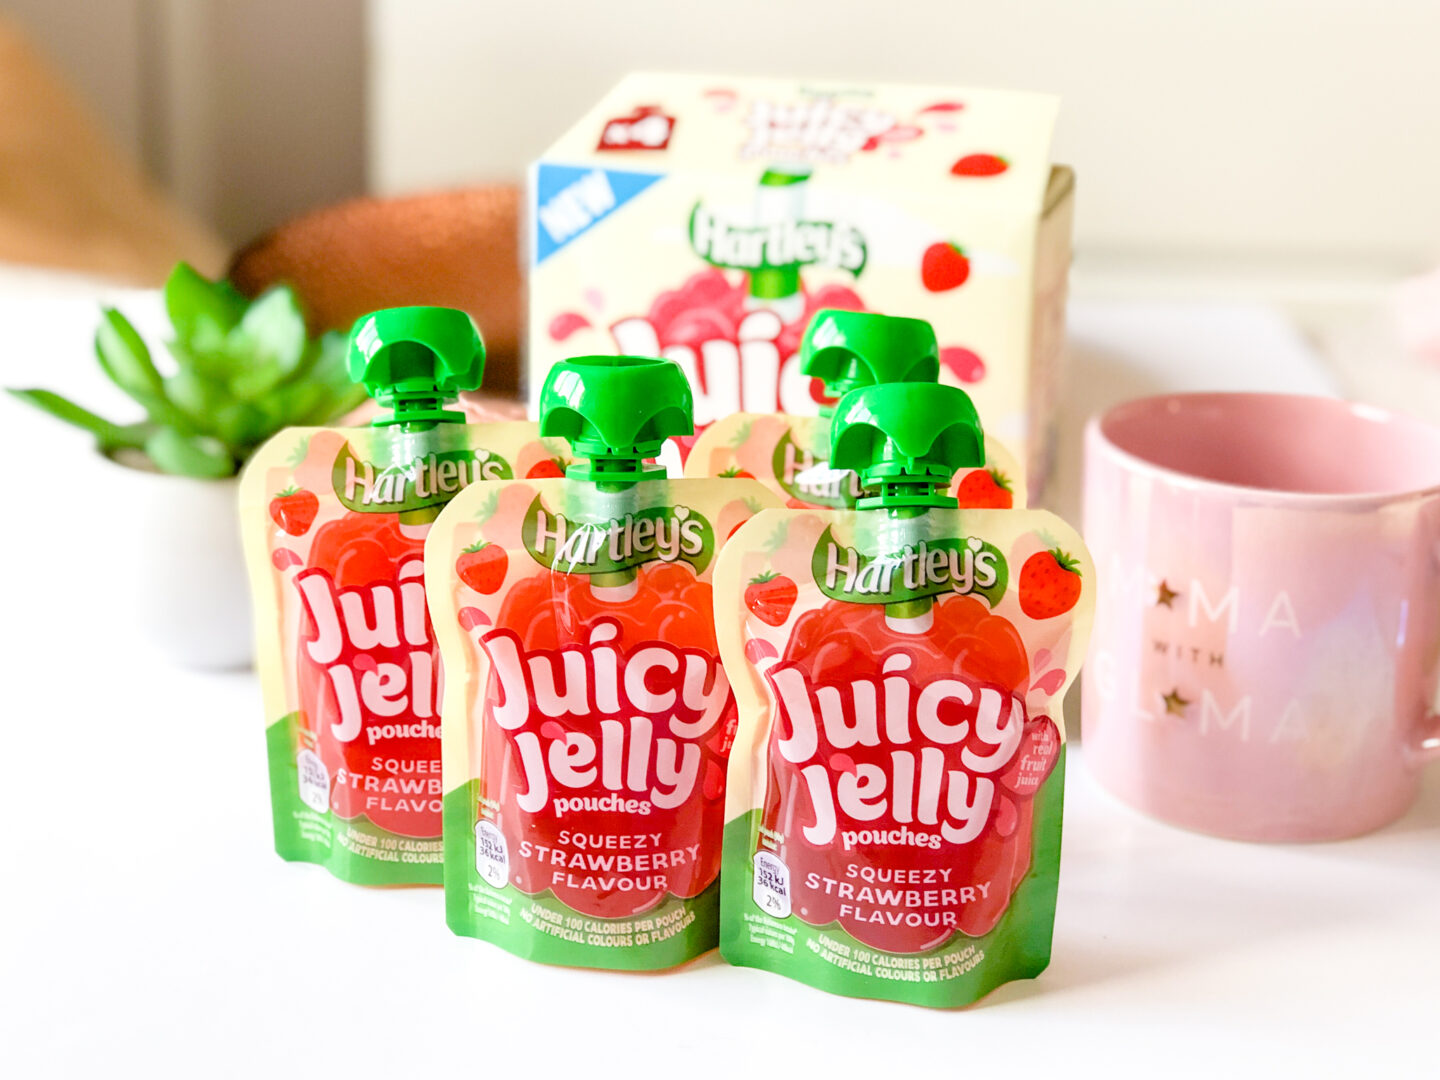 Hartley's Juicy Jelly Pouches - May 2020 Degusta Box